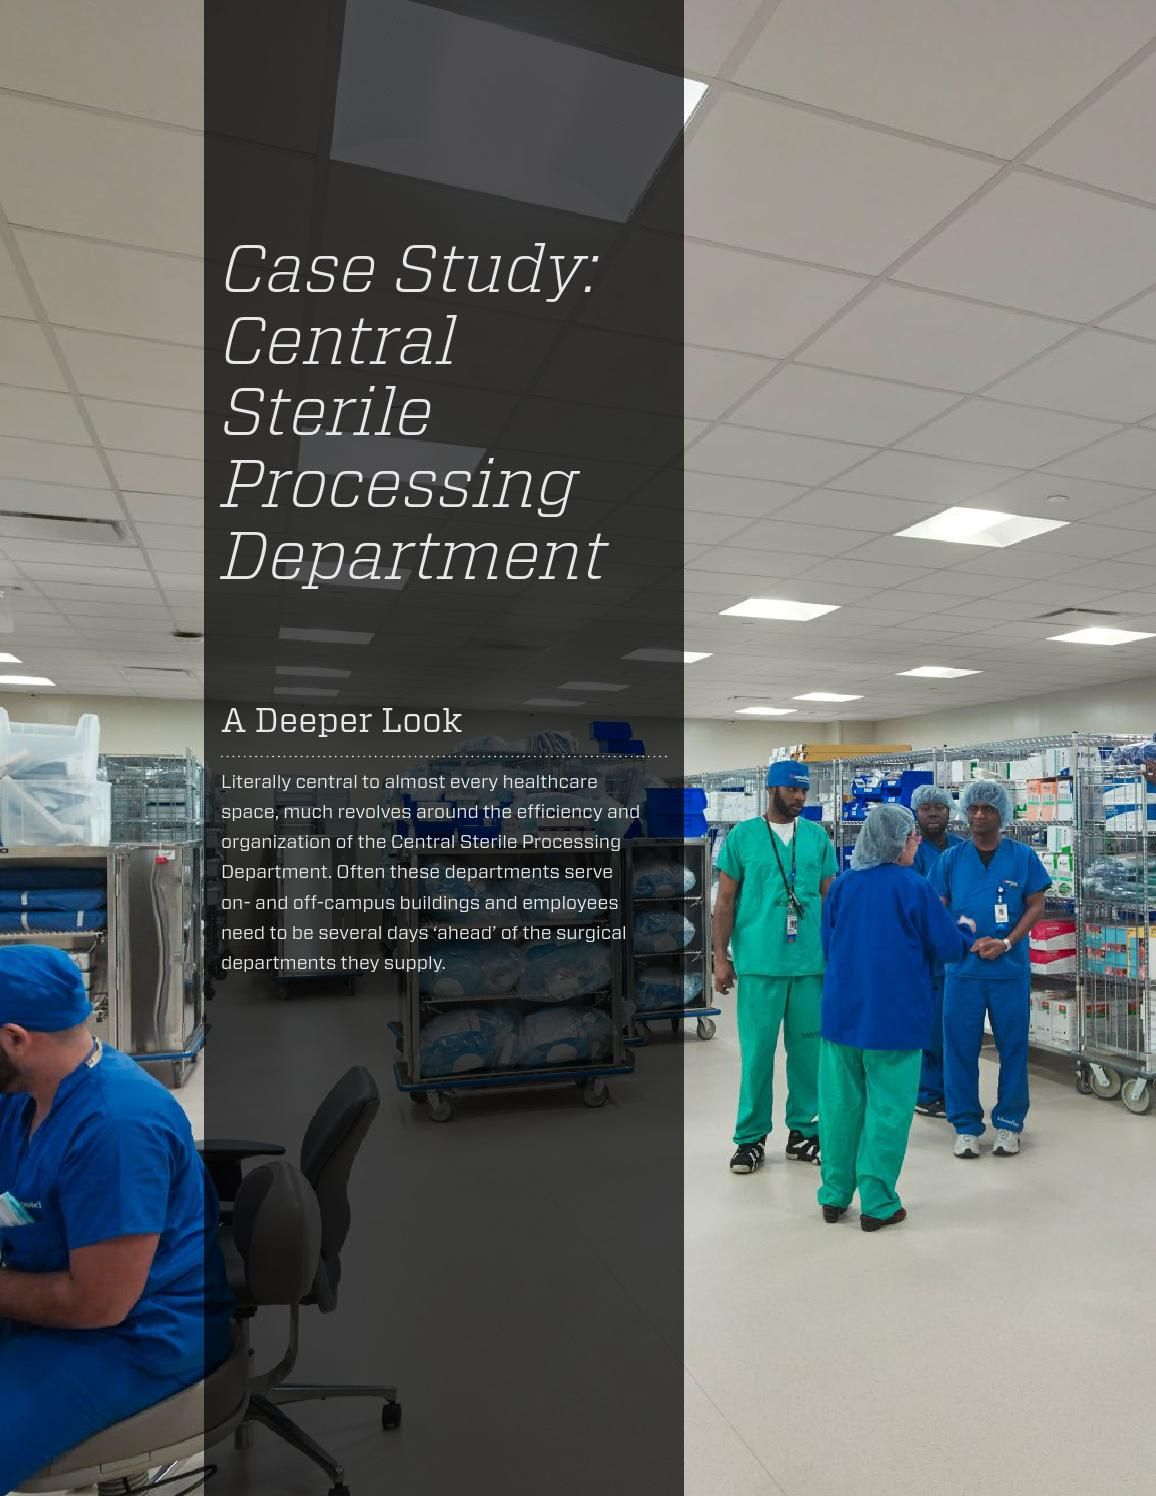 Case Study Central Sterile Processing Department